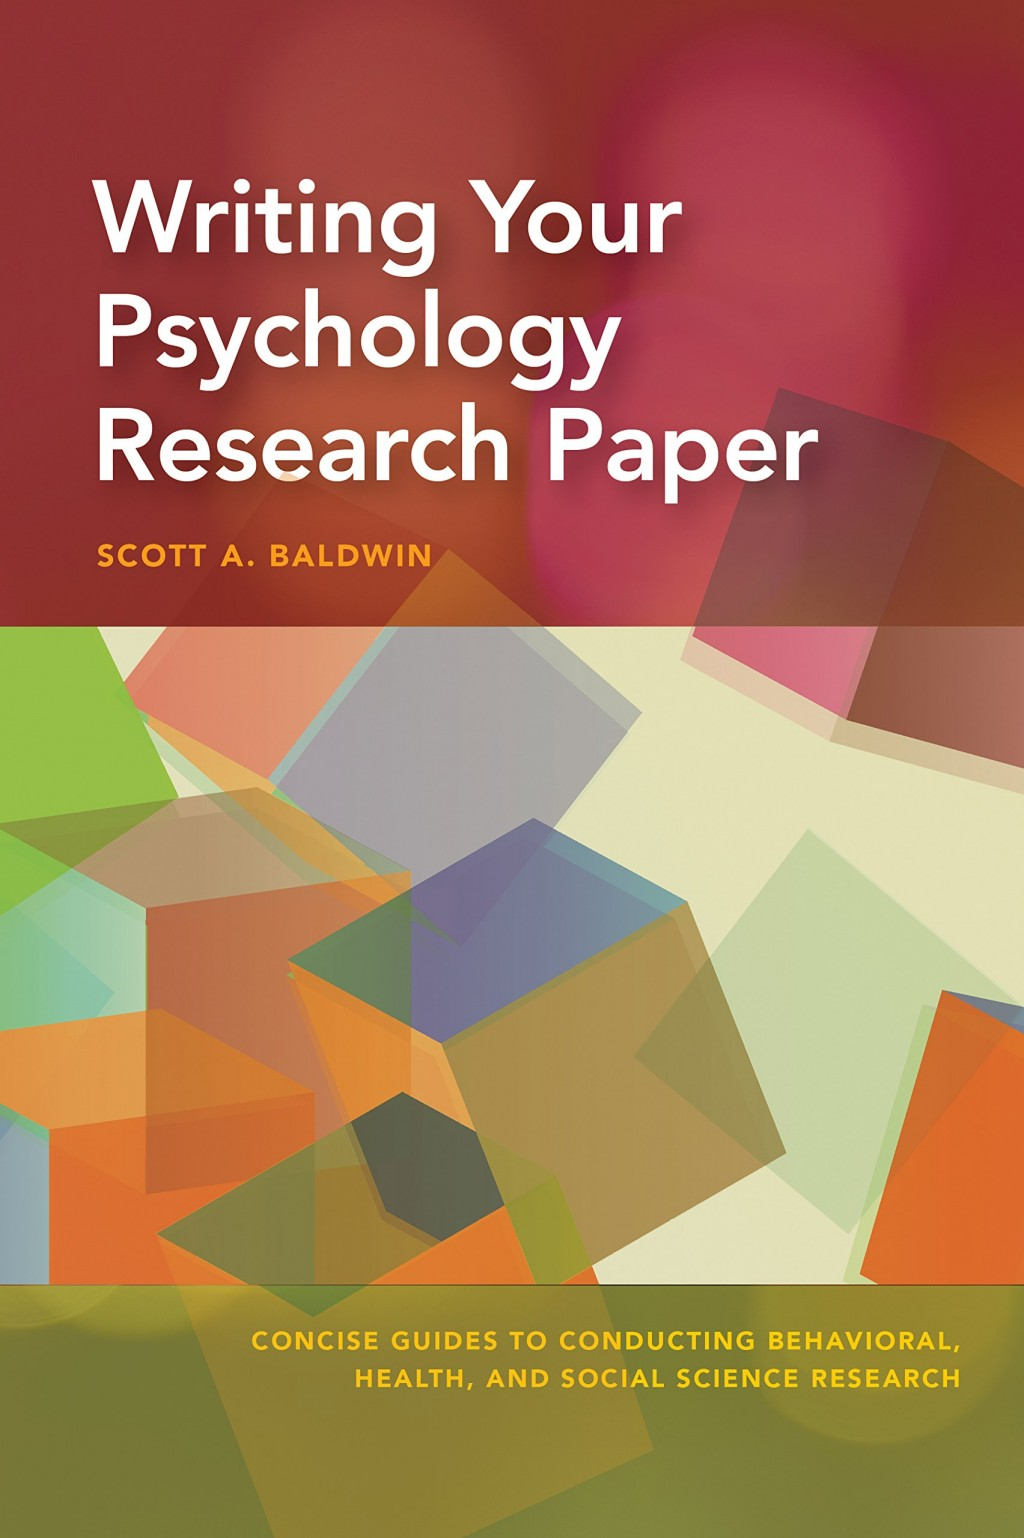 010 Psychology Research Paper On Anxiety Marvelous Topics Large